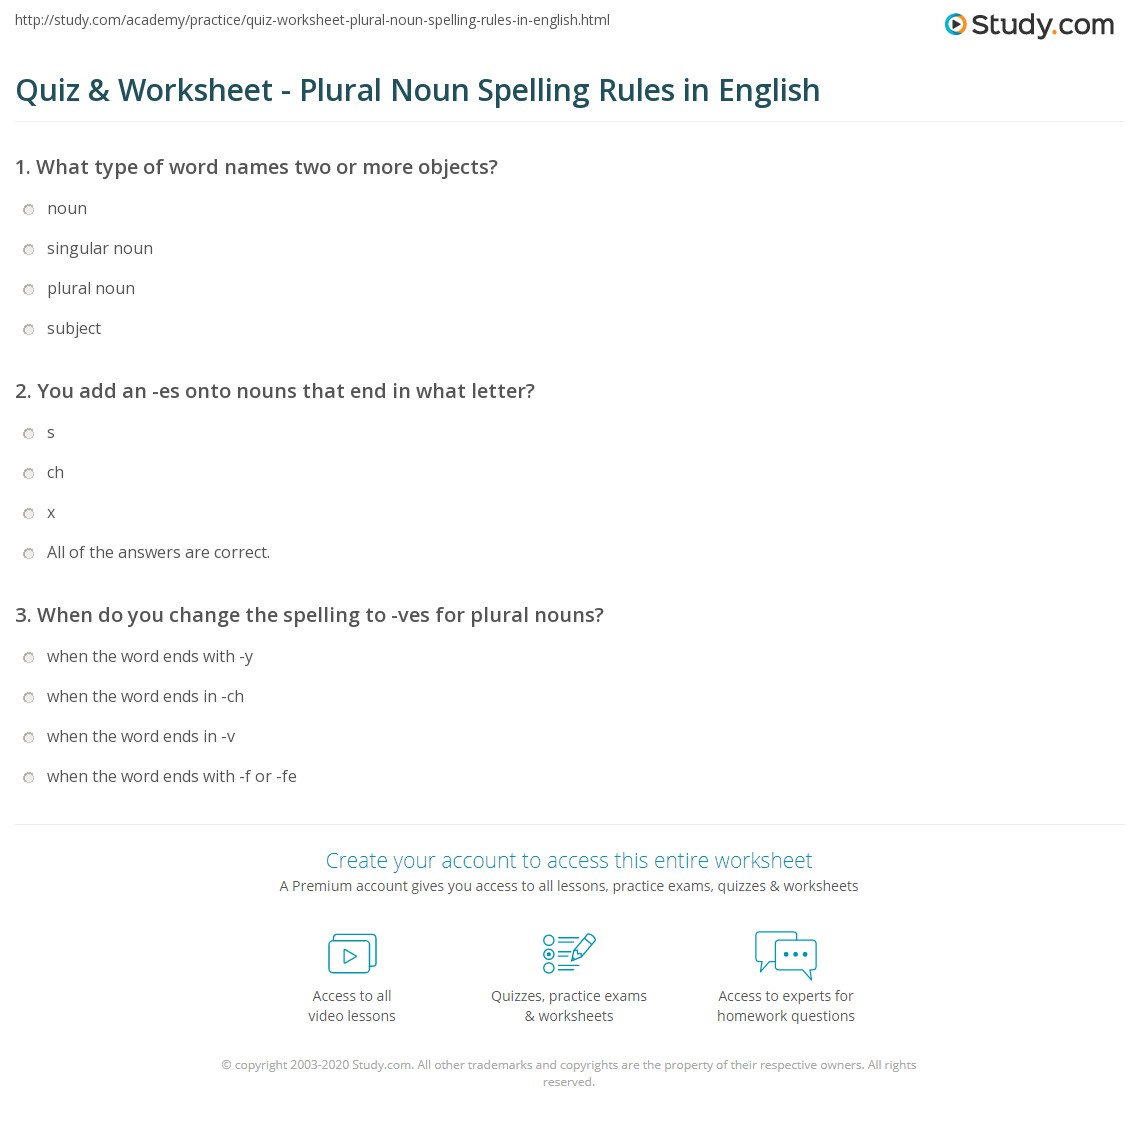 Quiz Worksheet Plural Noun Spelling Rules In English Study